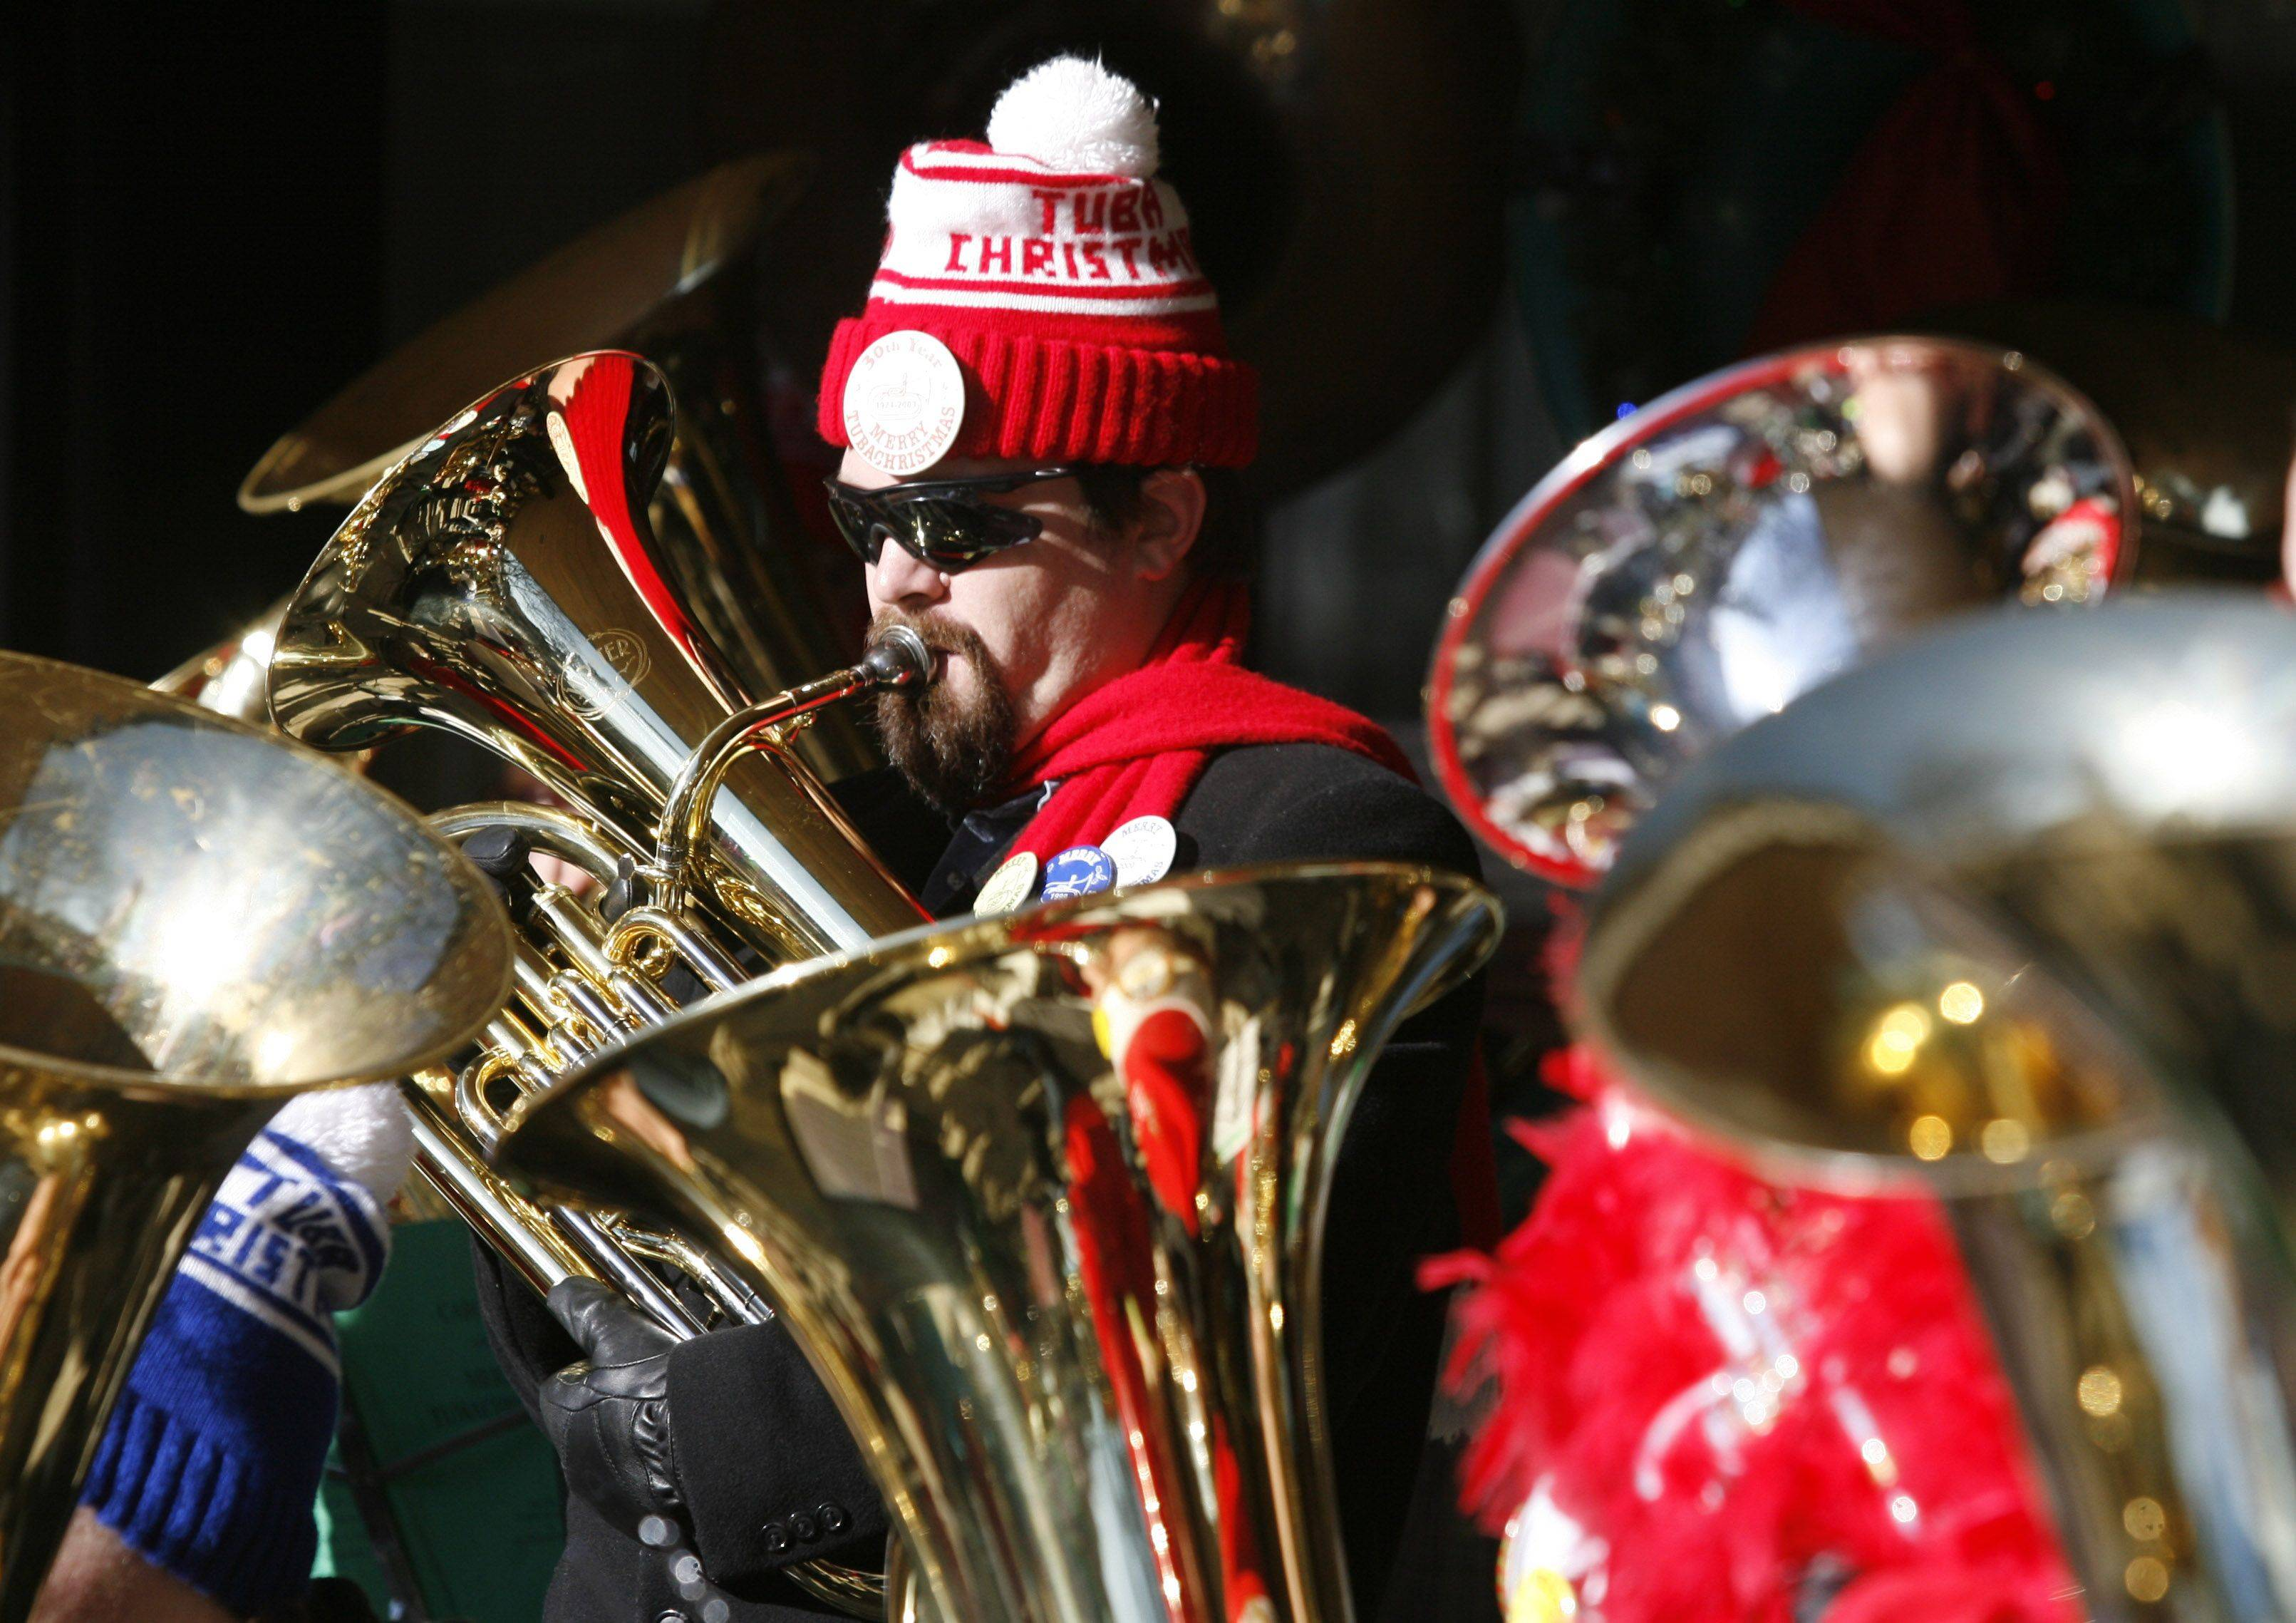 Byron Foret of Morris participates in the annual Tuba Christmas concert Saturday in Naperville. Low brass players performed 13 carols and let listeners sing along.